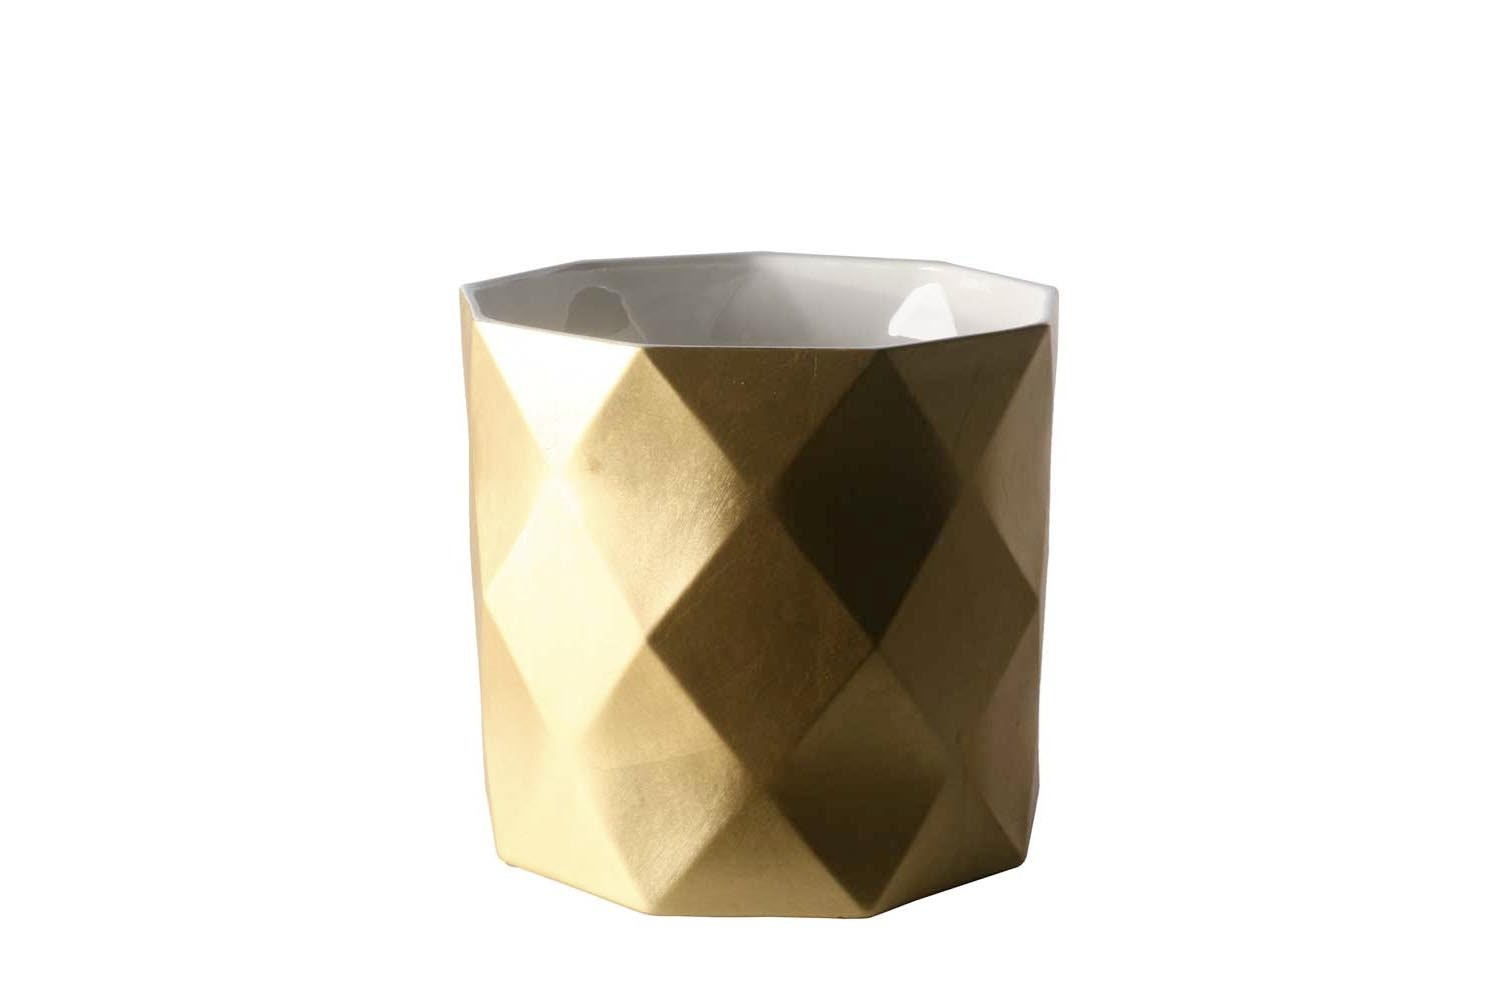 Joker Low Vase in Gold or Silver by Nicole Aebischer for B&B Italia